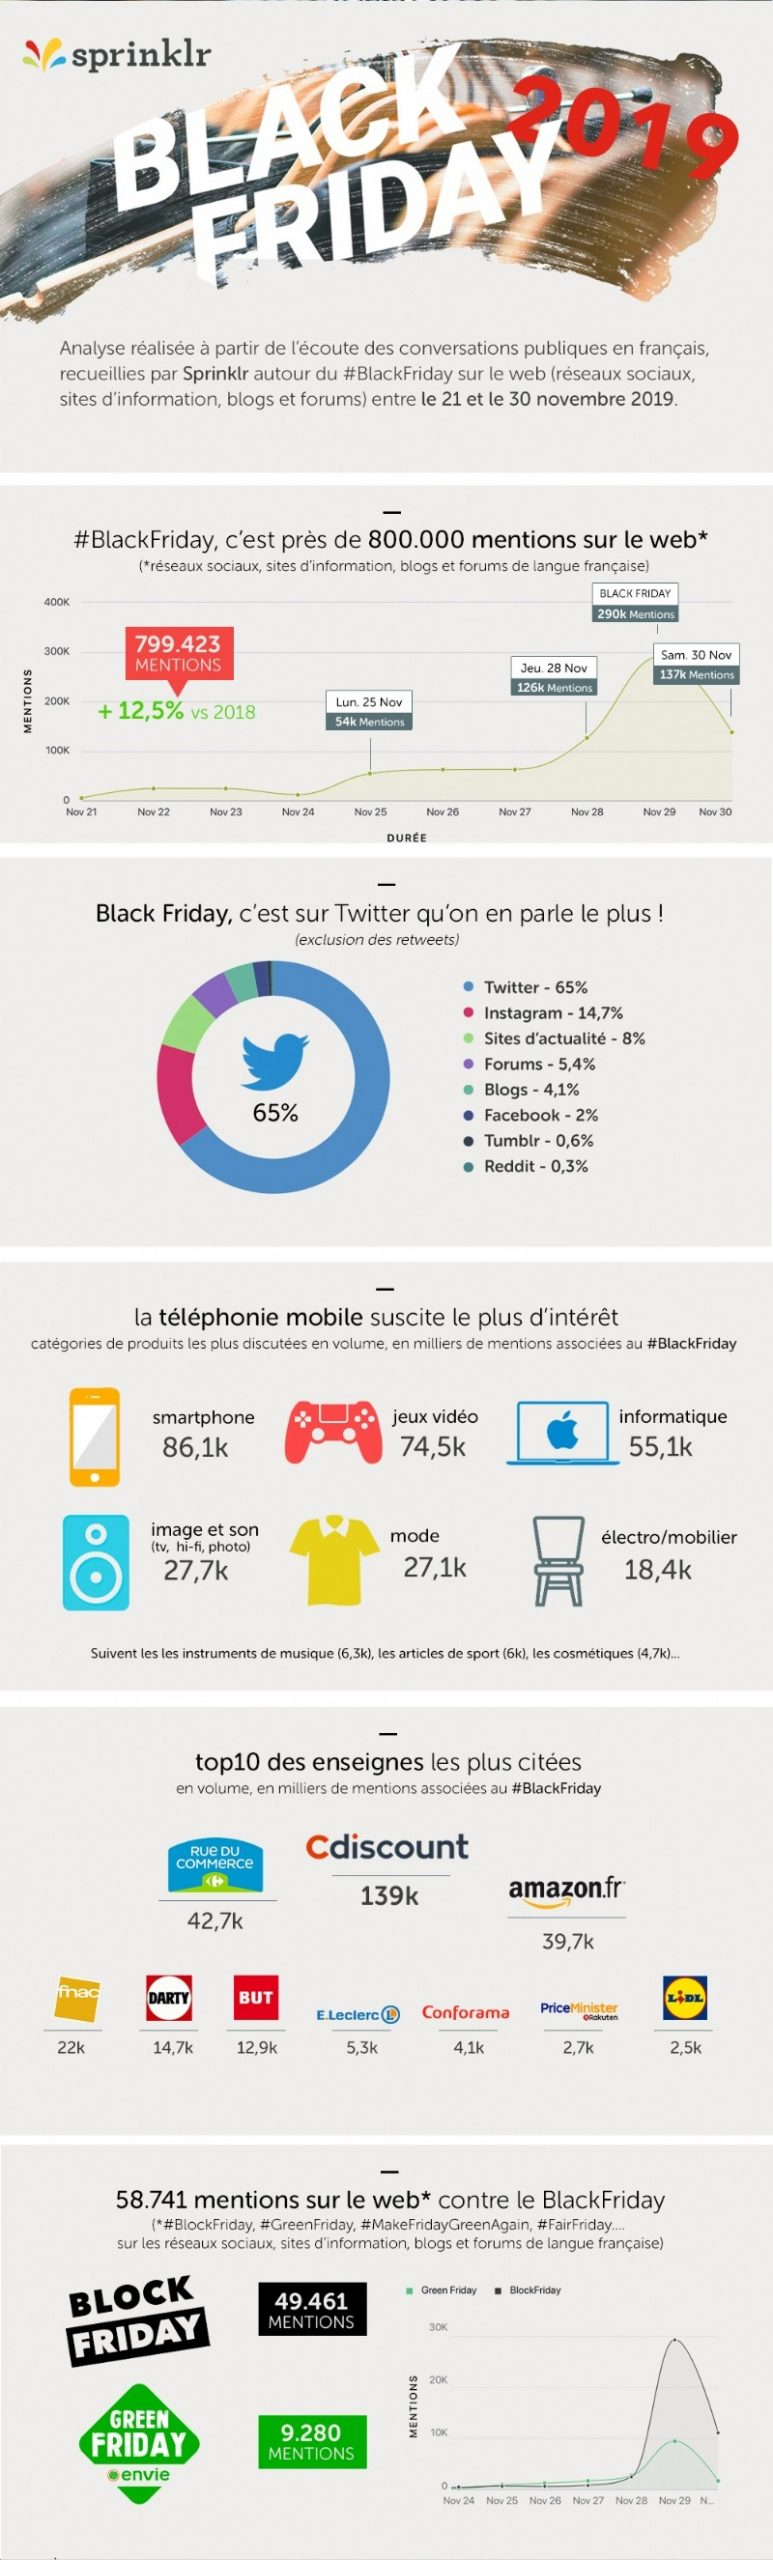 Infographie Black Friday 2019